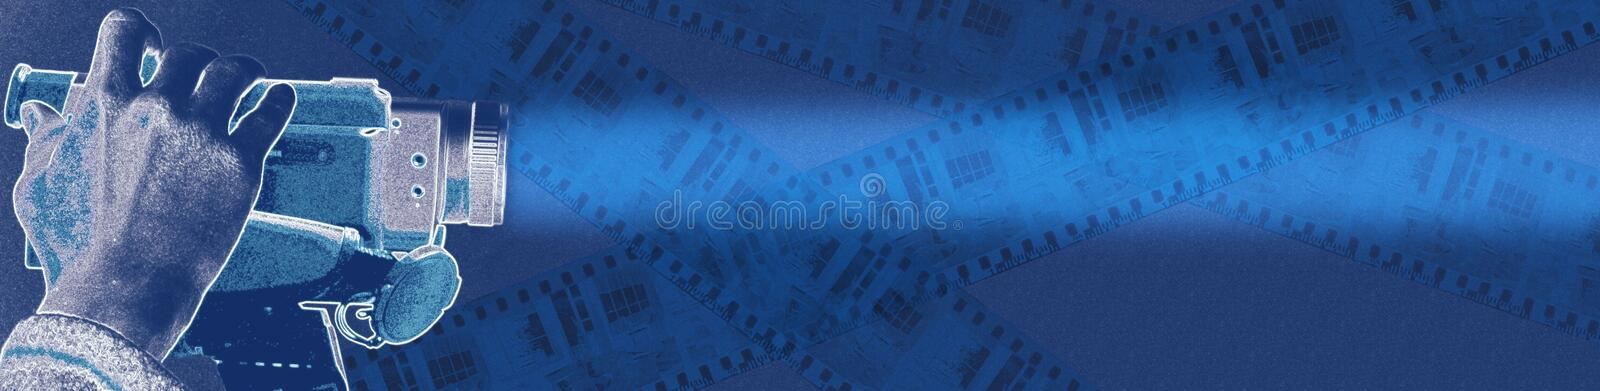 Download AV banner stock illustration. Image of body, broadcasting - 642291